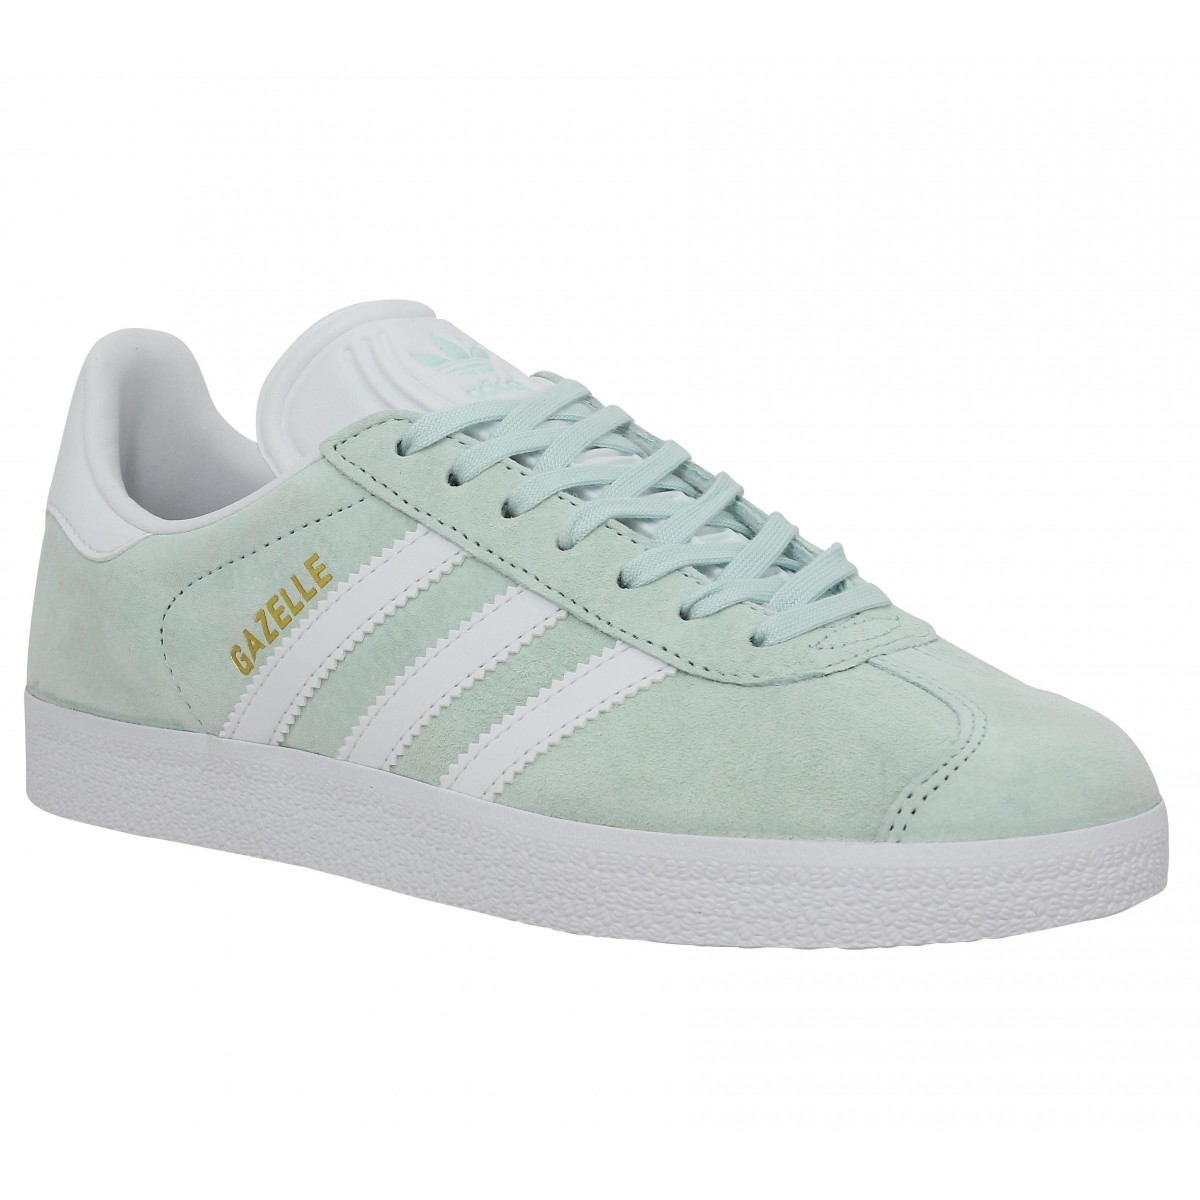 soldes adidas gazelle ice mint femme fanny chaussures. Black Bedroom Furniture Sets. Home Design Ideas